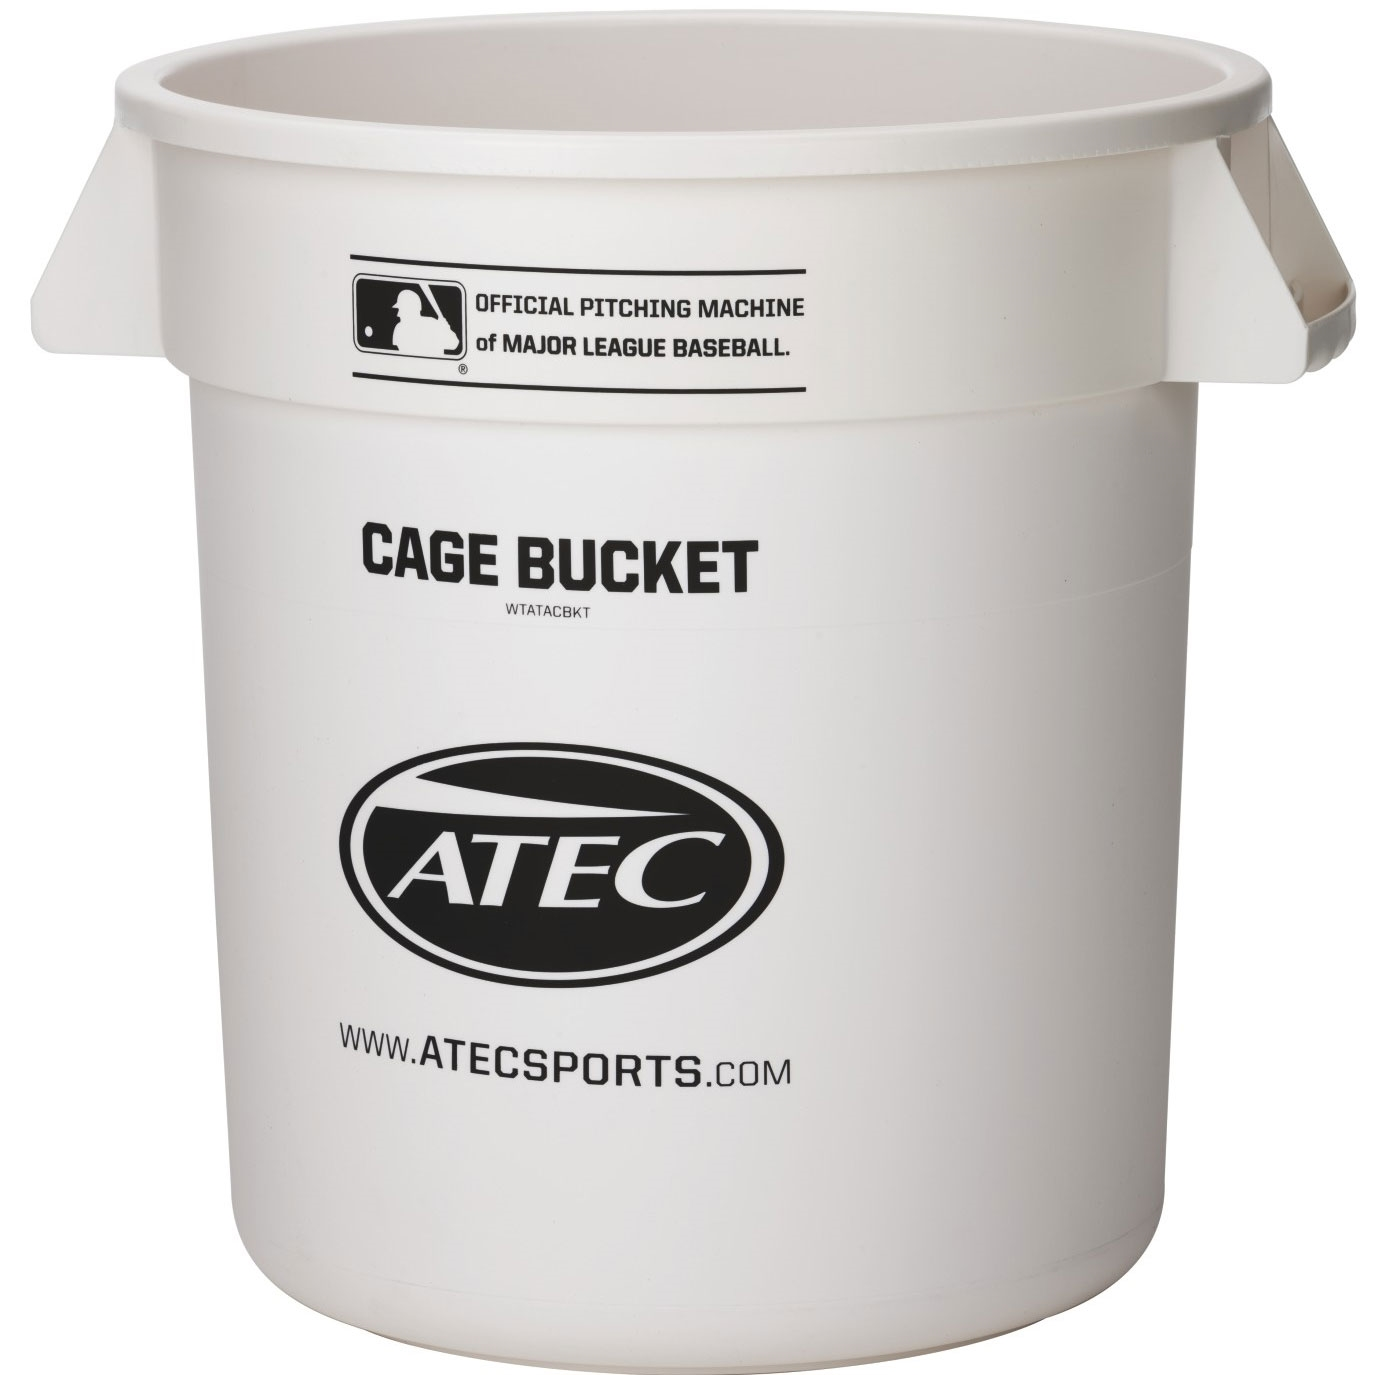 Packaging or Promotional image for ATEC Cage Bucket